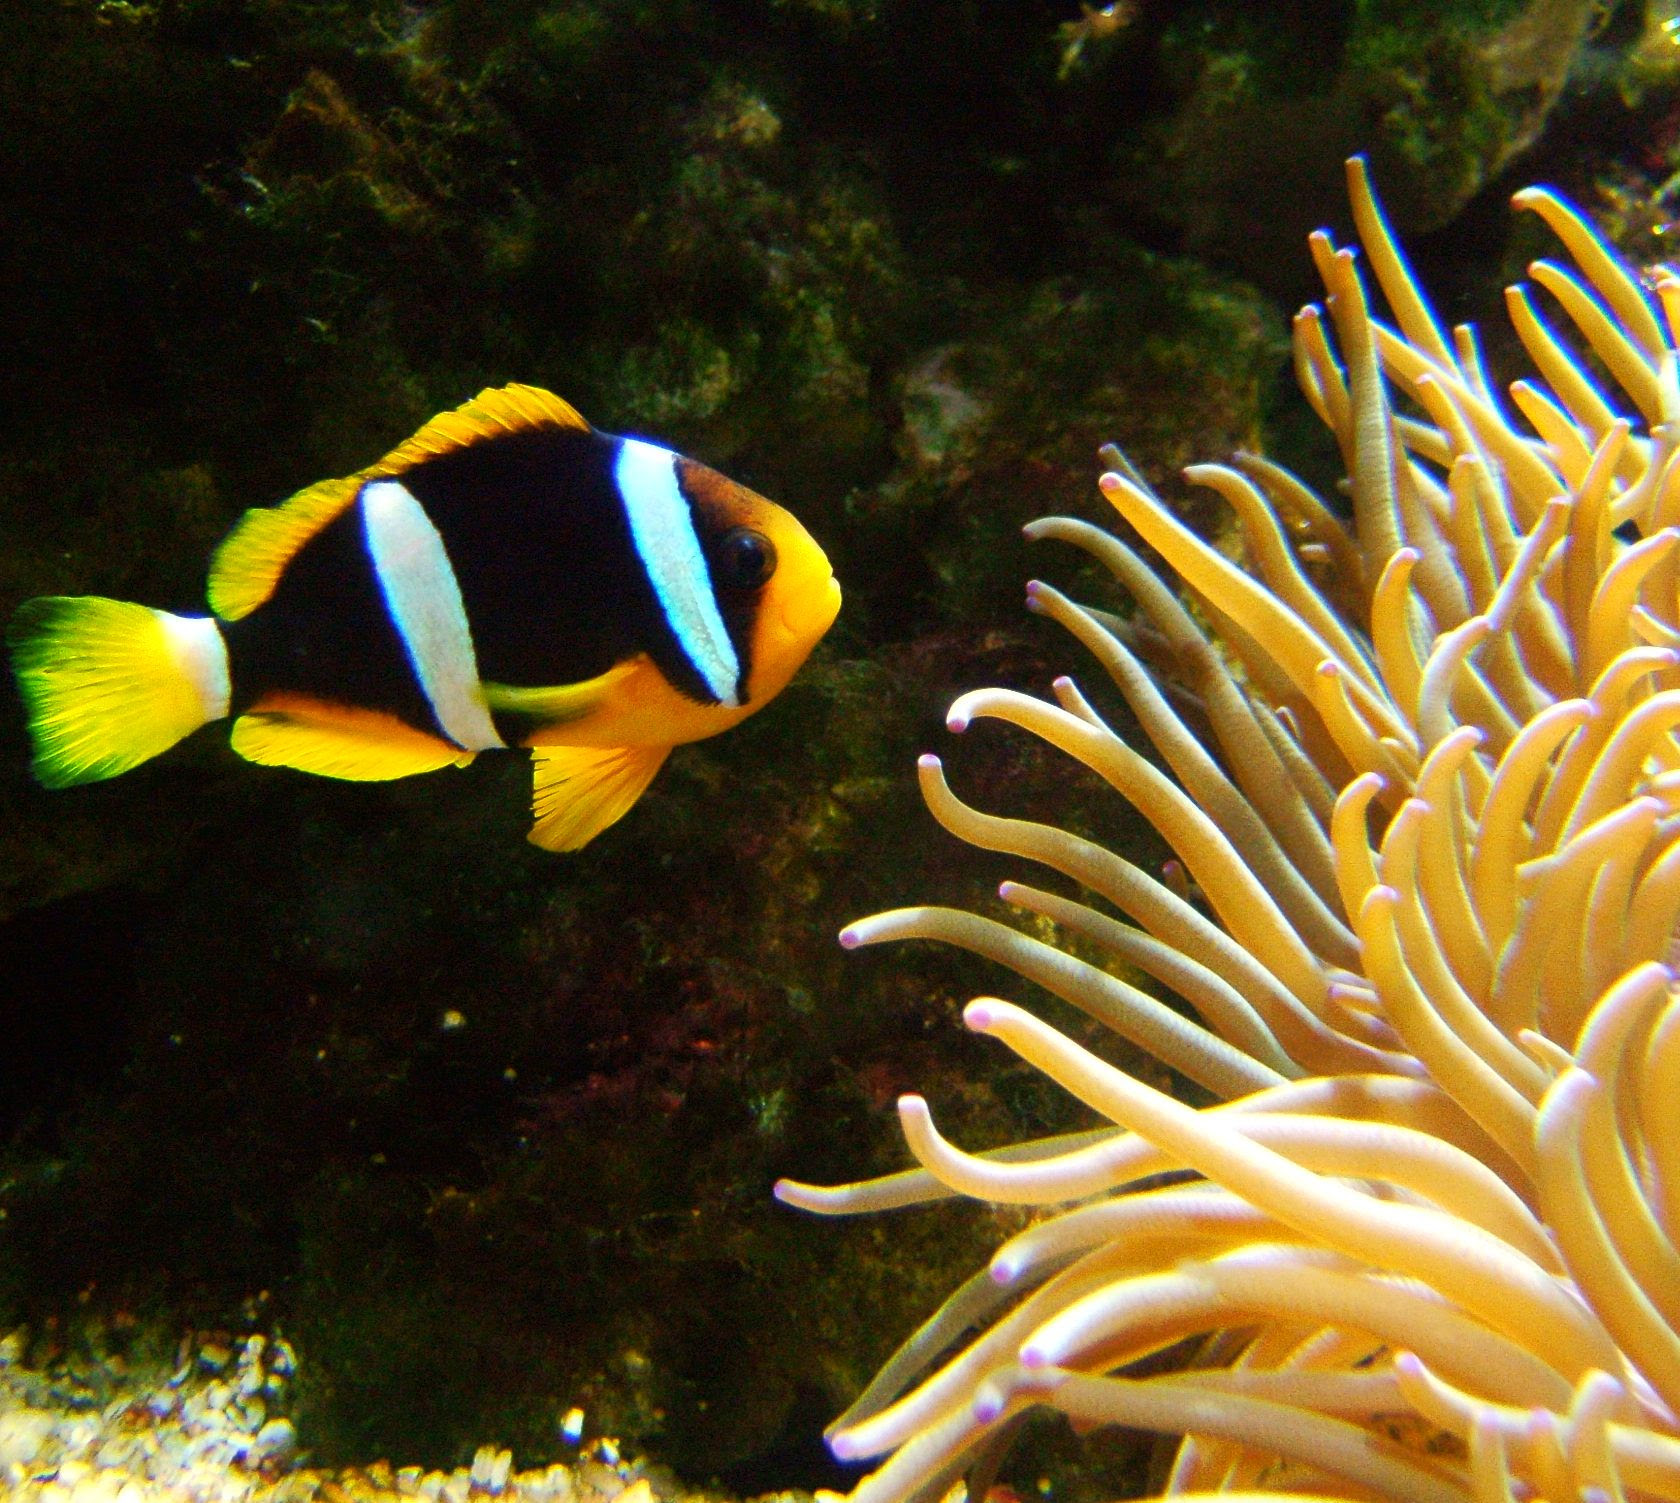 http://upload.wikimedia.org/wikipedia/commons/d/da/Amphiprion_clarkii.jpg